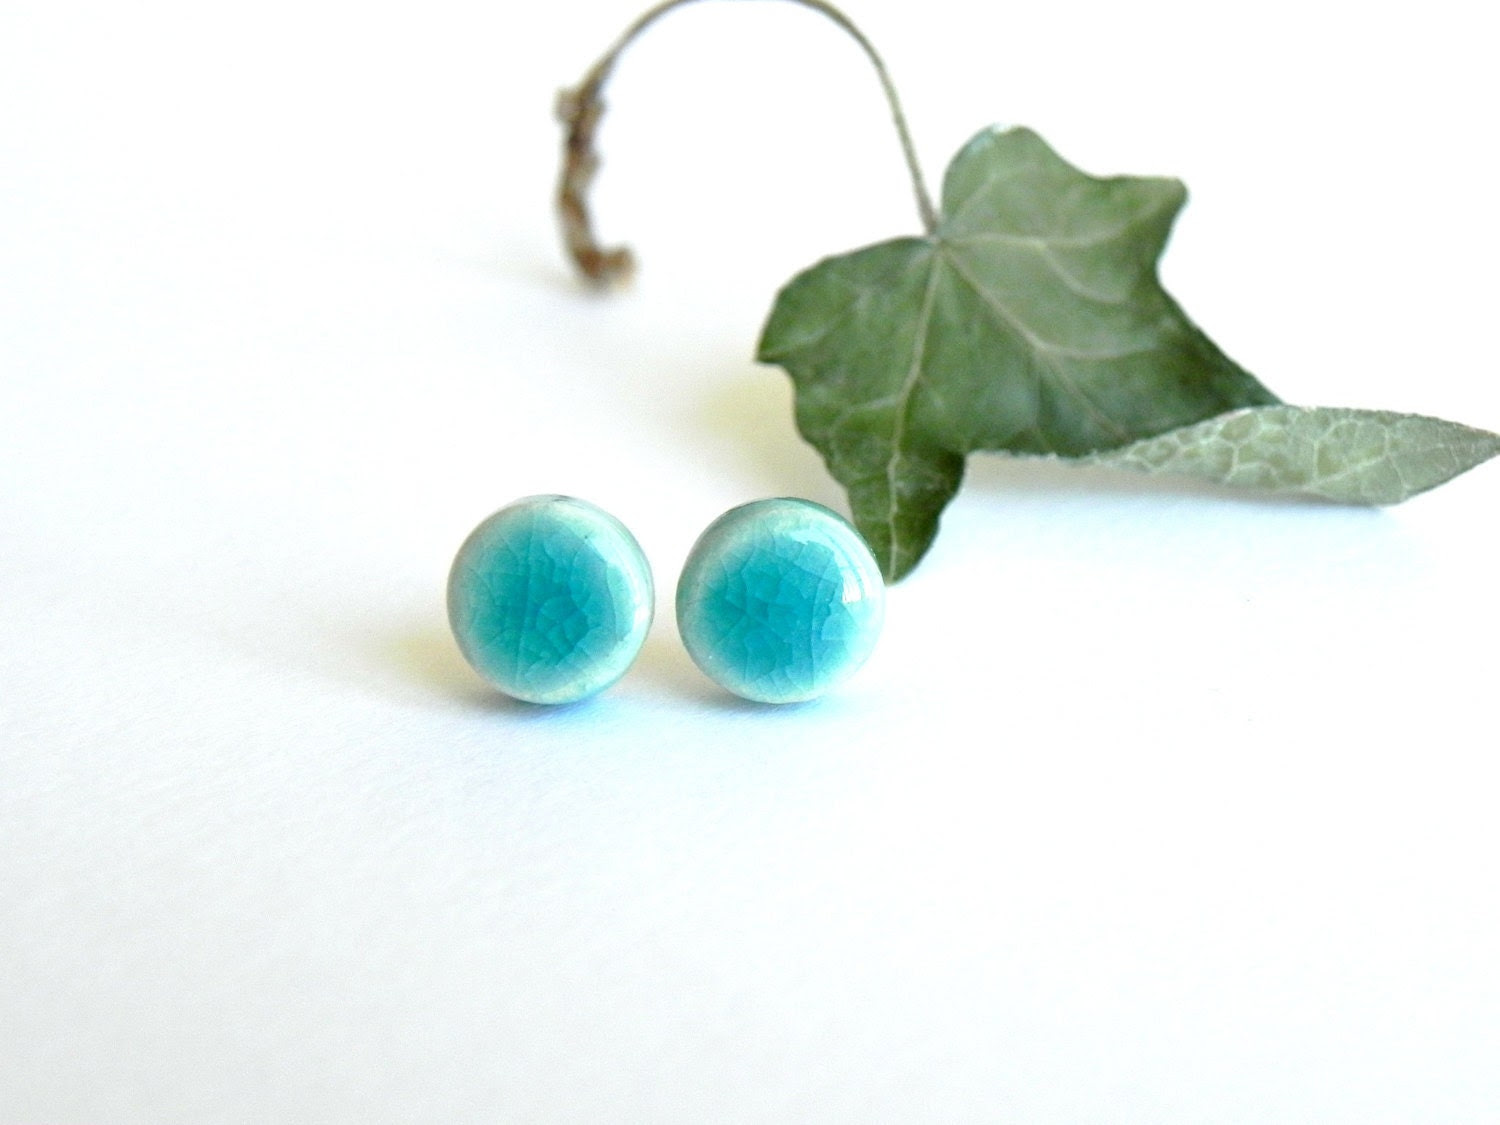 Stud Earrings Geometric Pottery Round Ceramic Post Everyday Jewelry - LemoneRouge